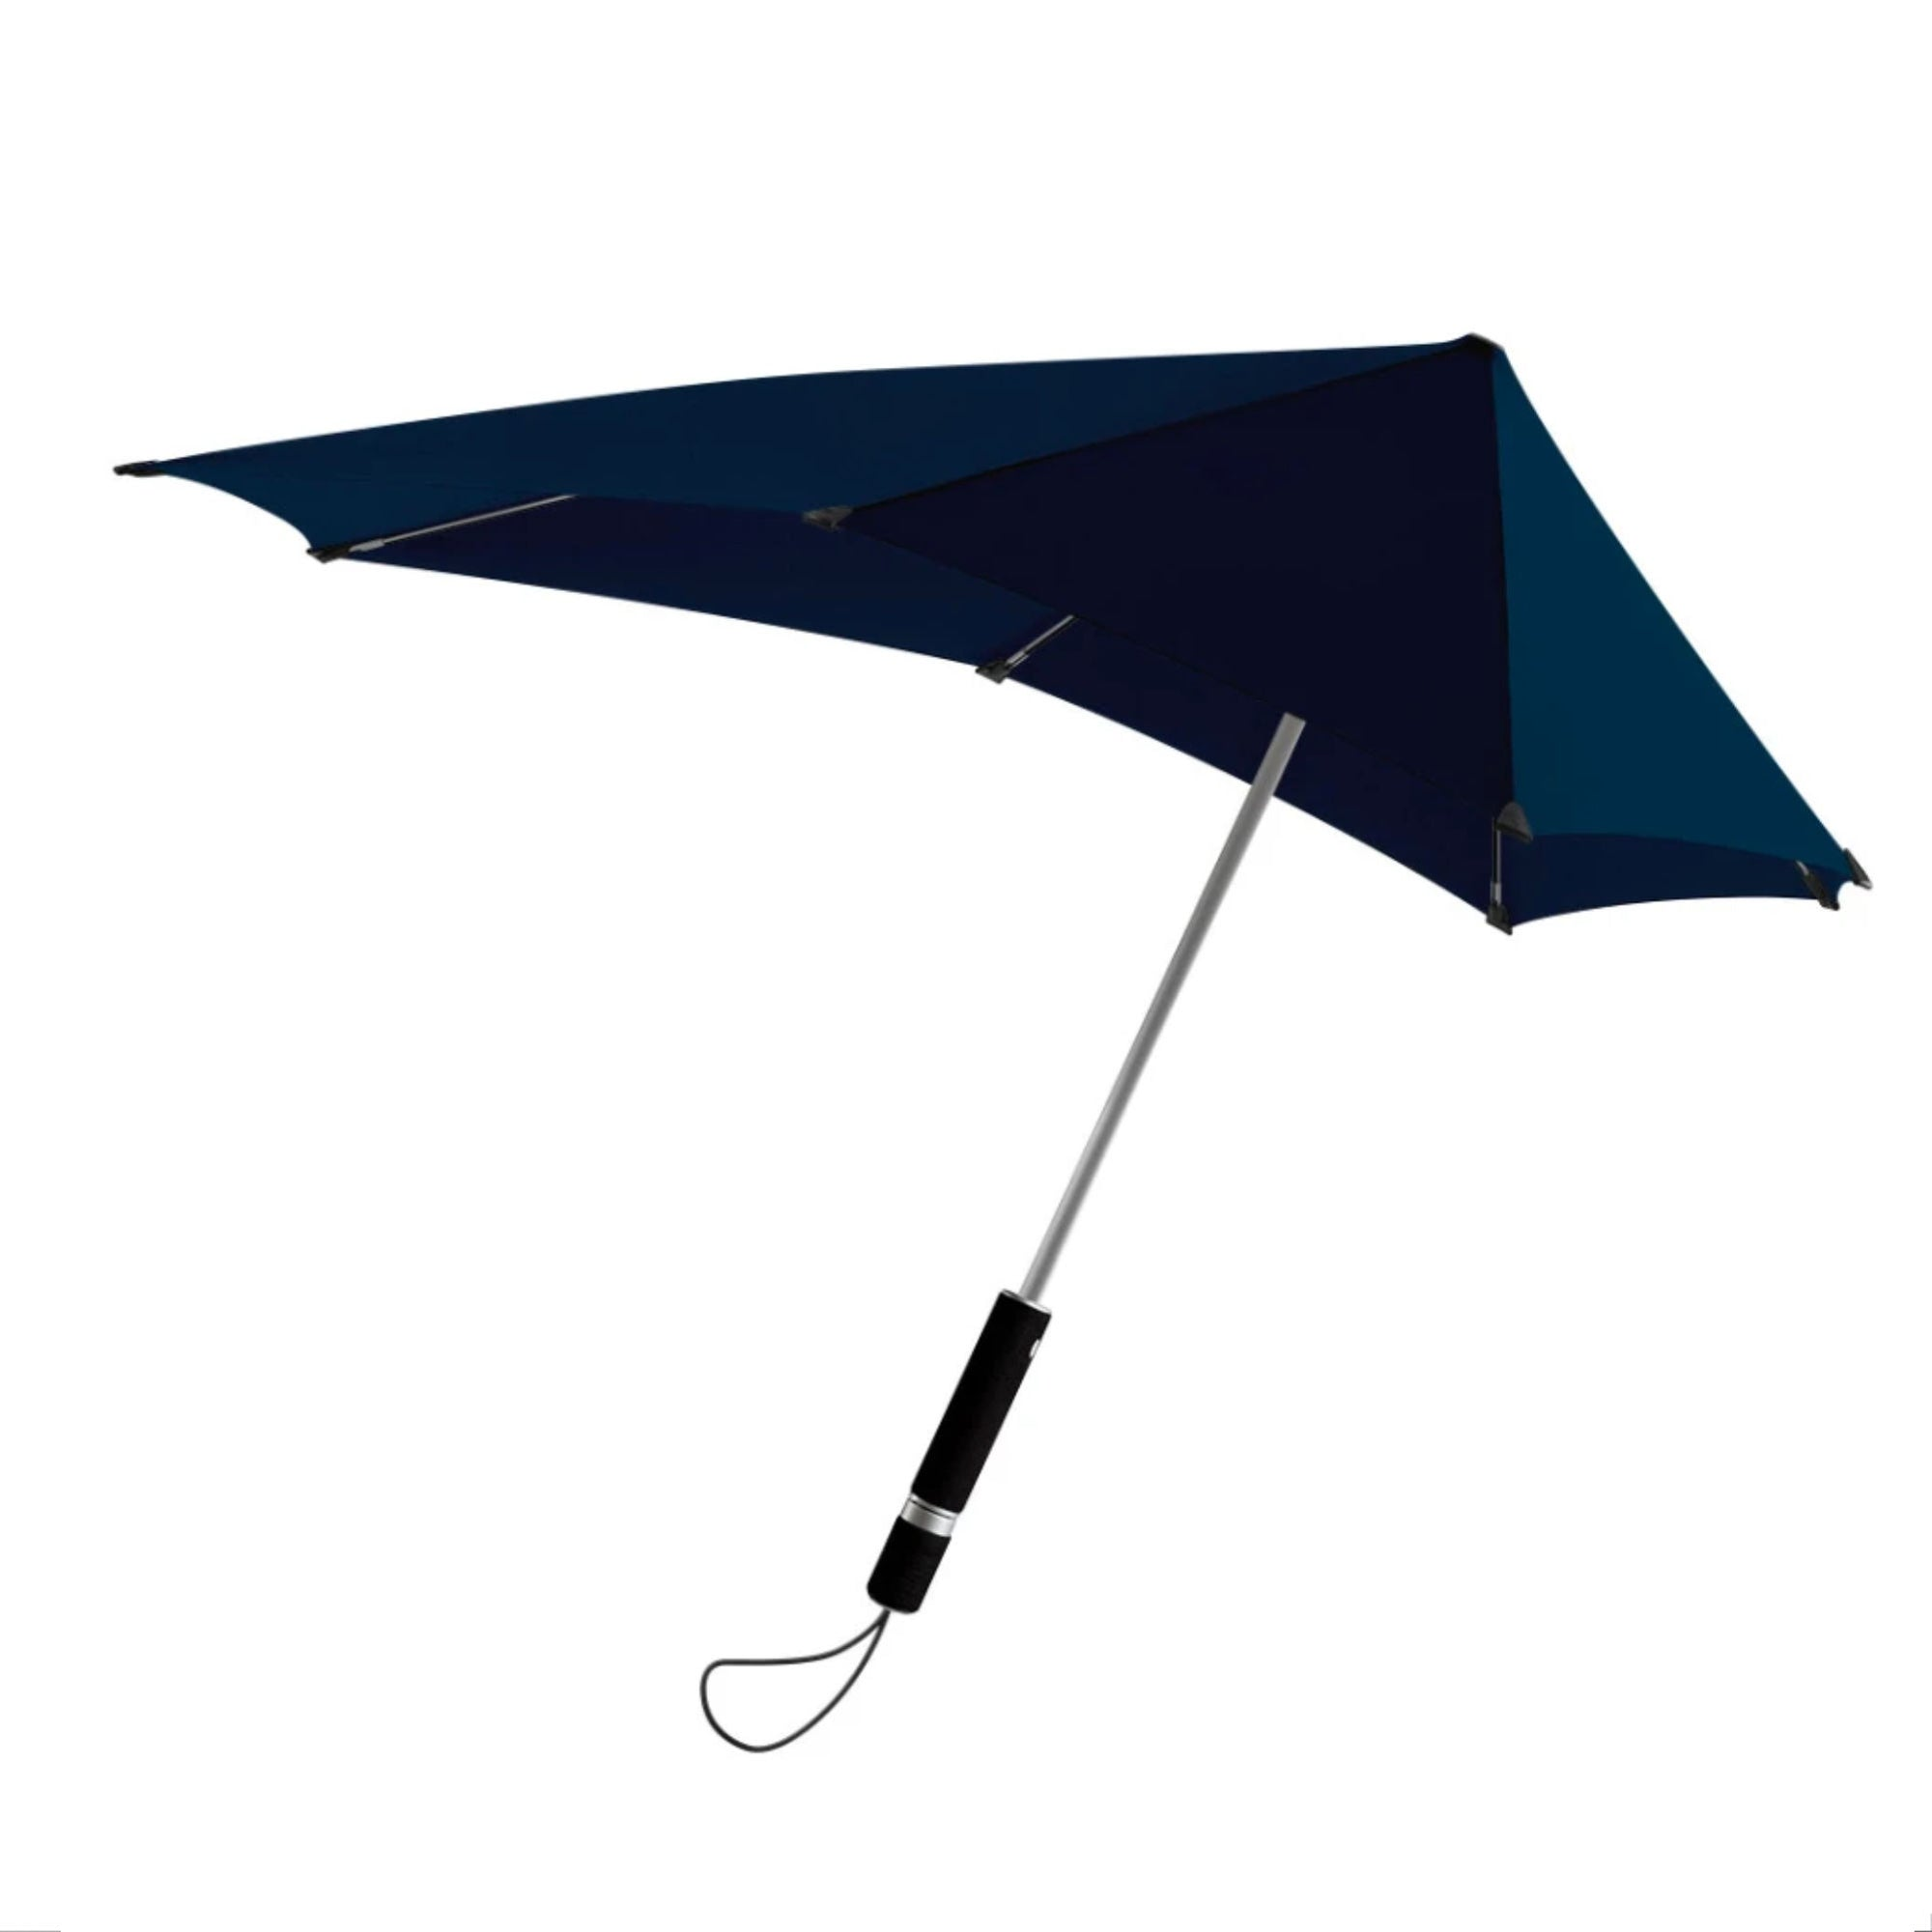 Senz° Original storm umbrella, midnight blue